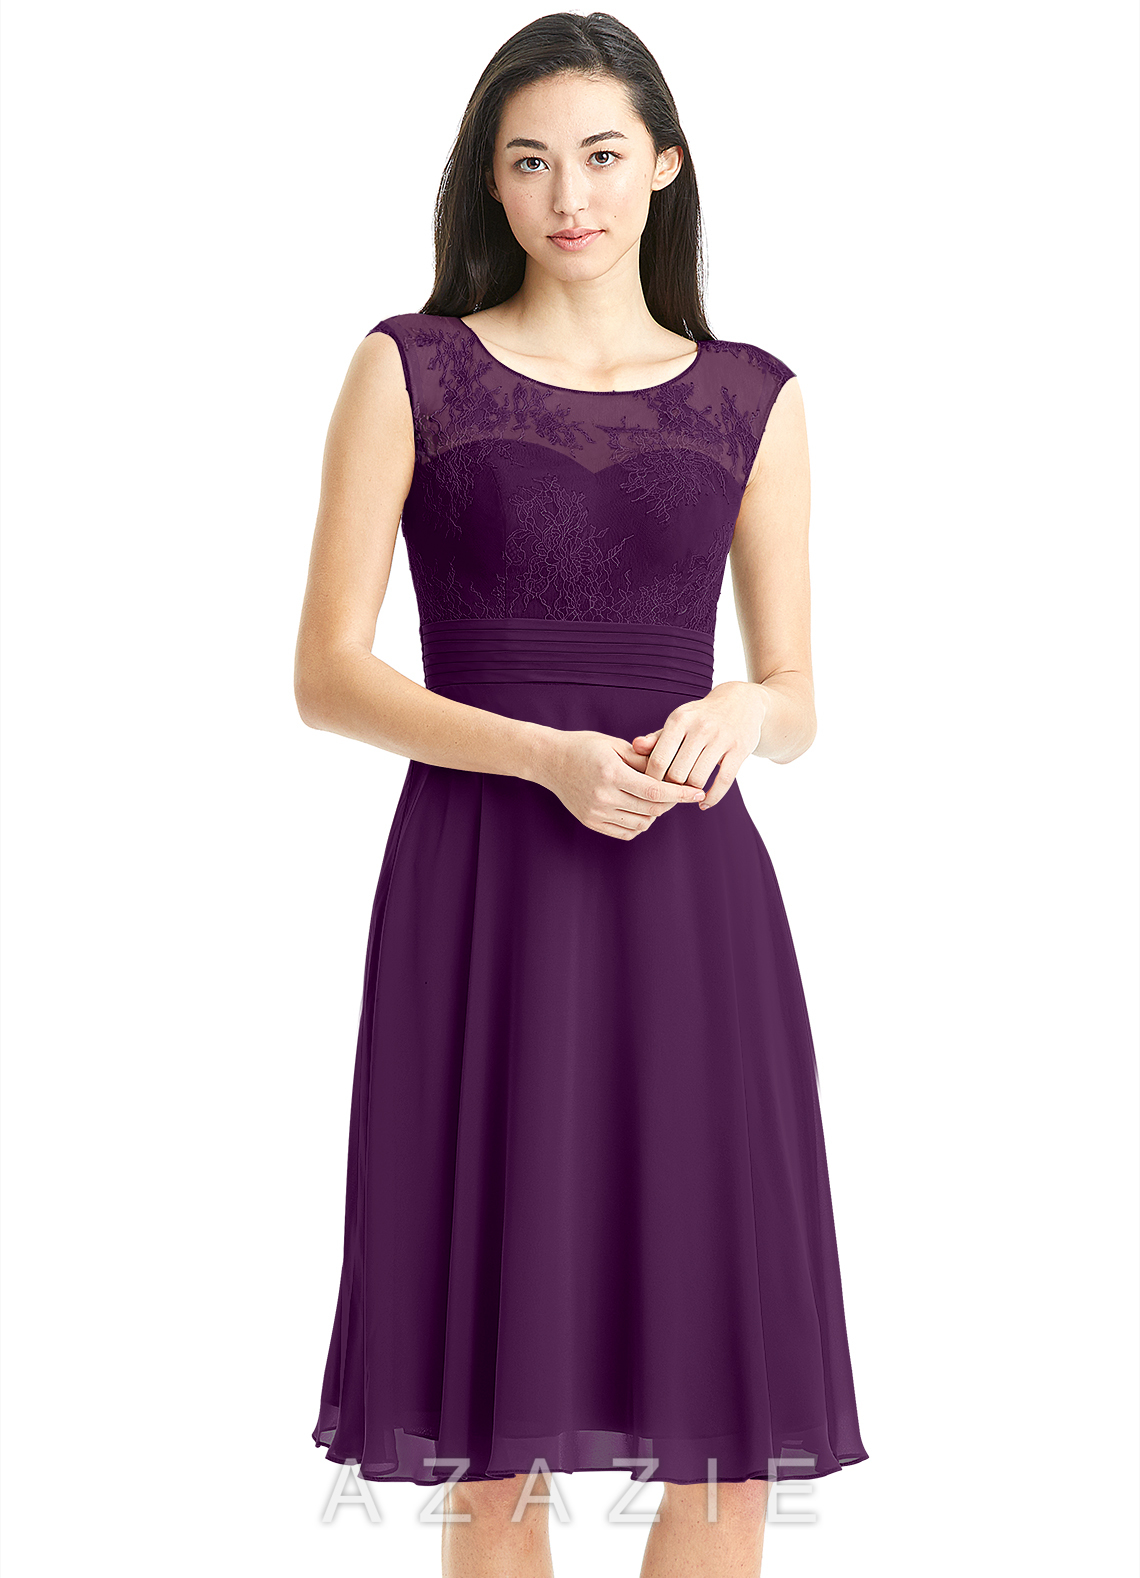 Azazie Missy Bridesmaid Dress | Azazie